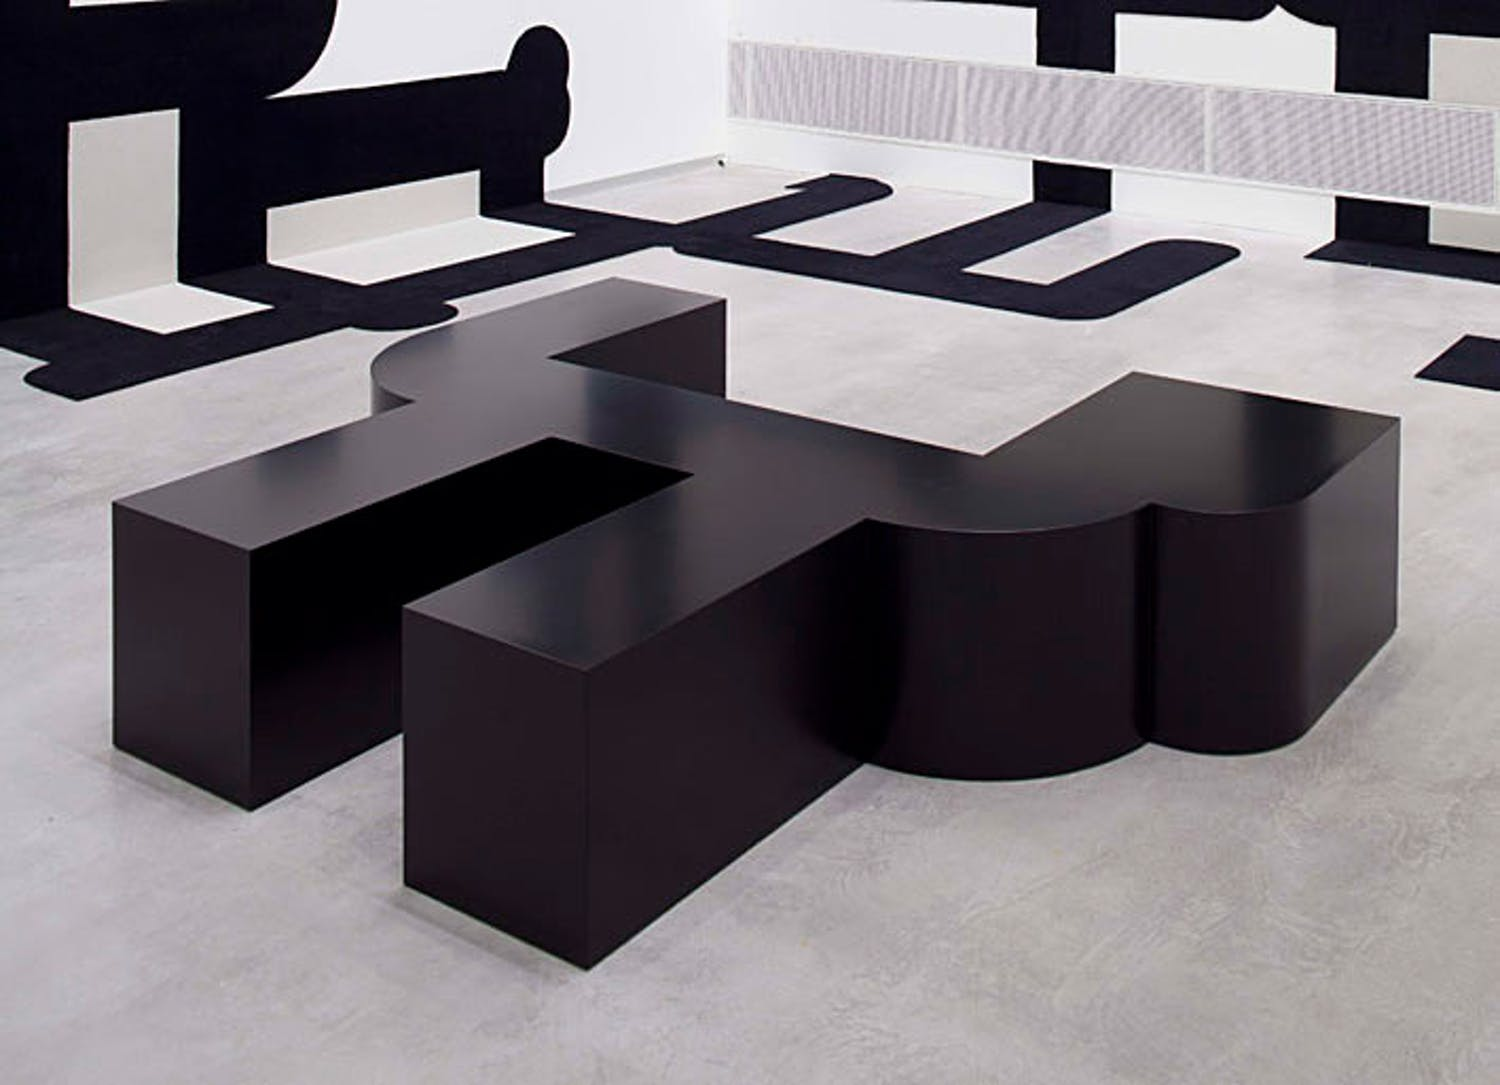 J mayer h 39 s joh3 preview in berlin for Junior interior designer jobs nyc